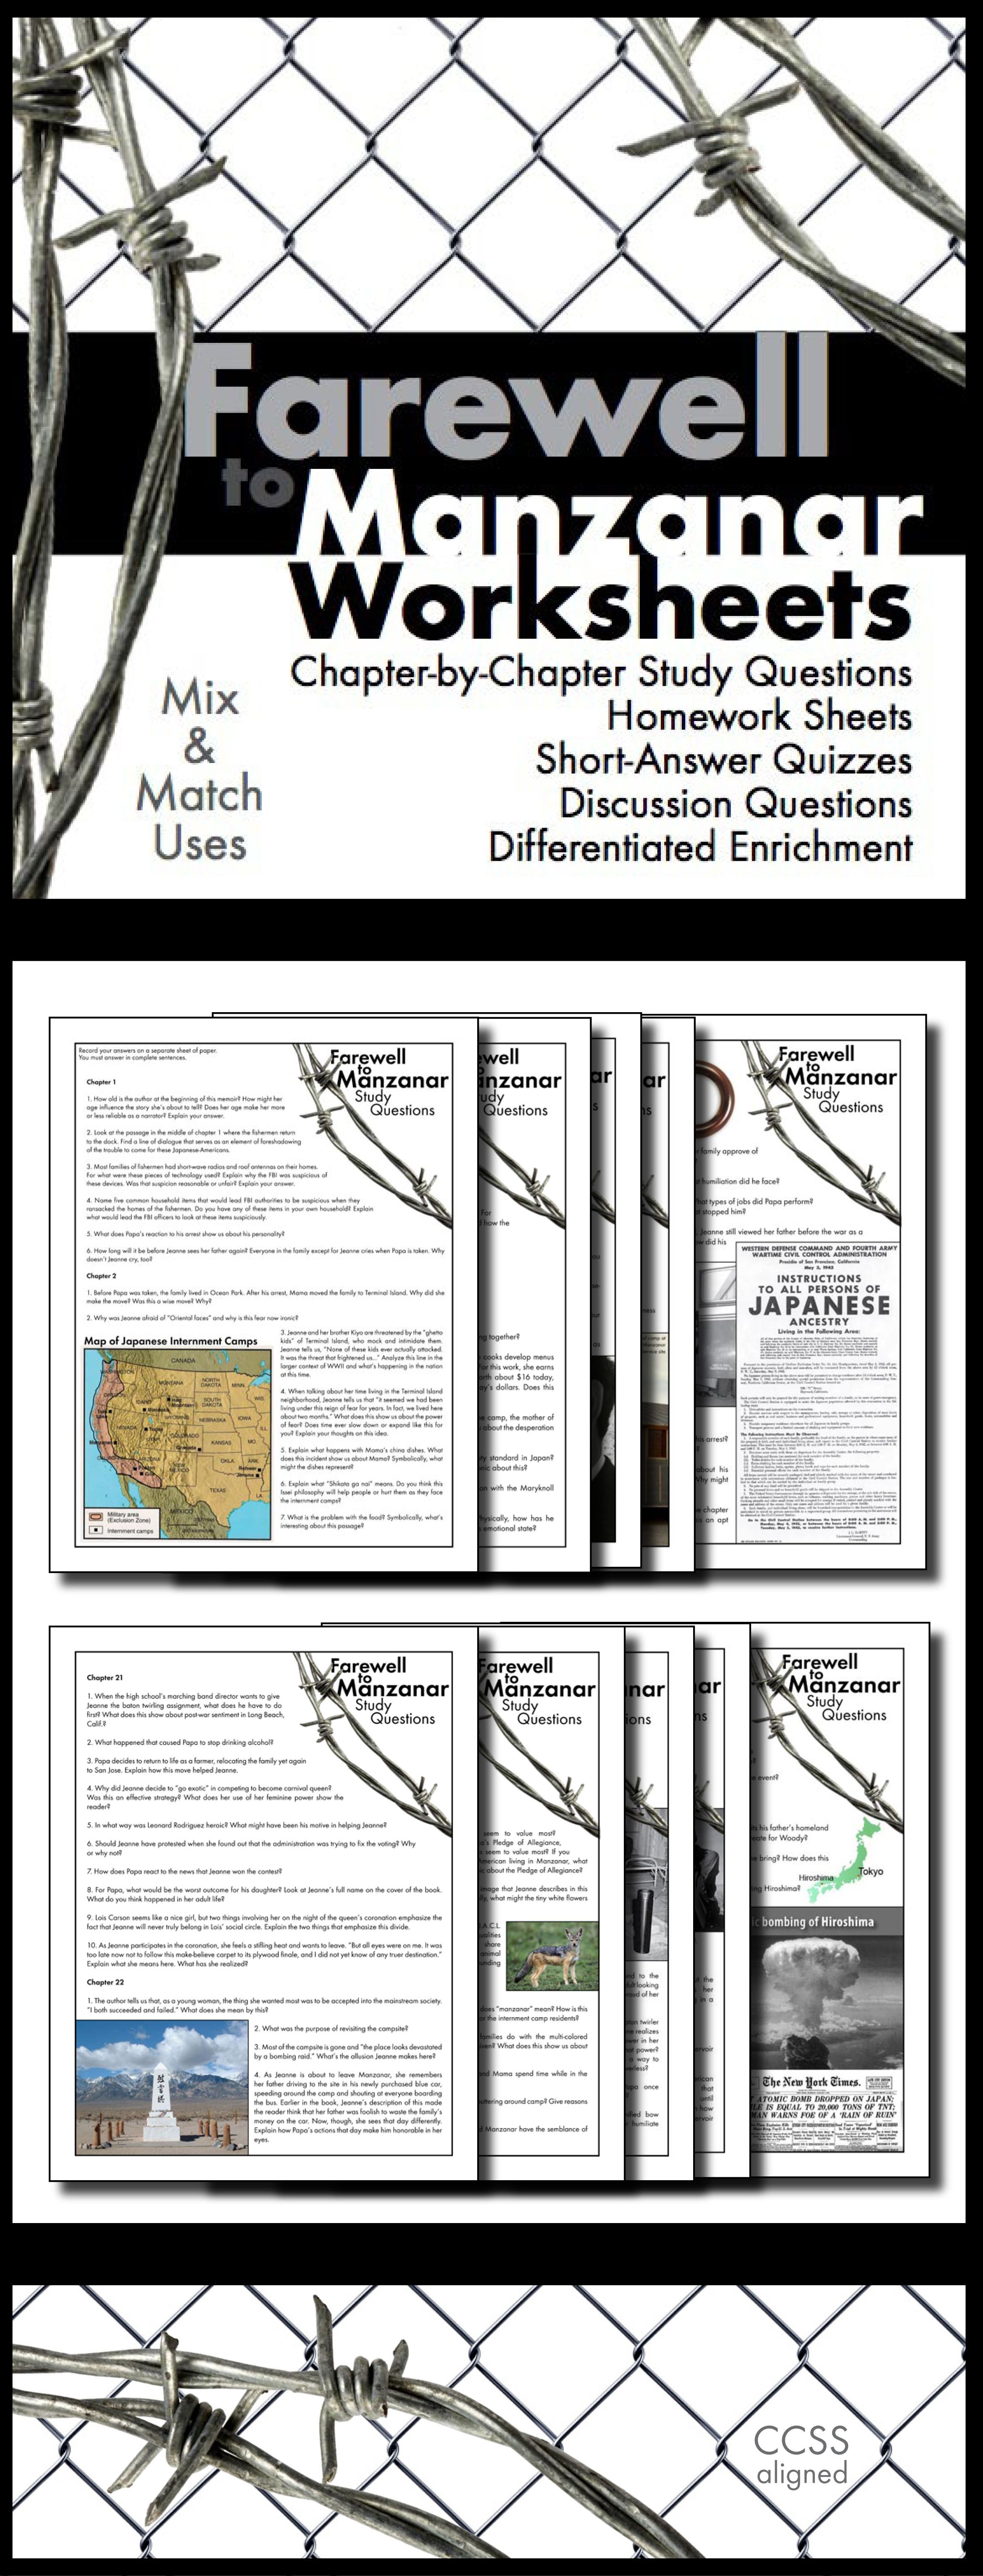 Farewell To Manzanar Japanese Internment Worksheets Hw Discussion For Memoir